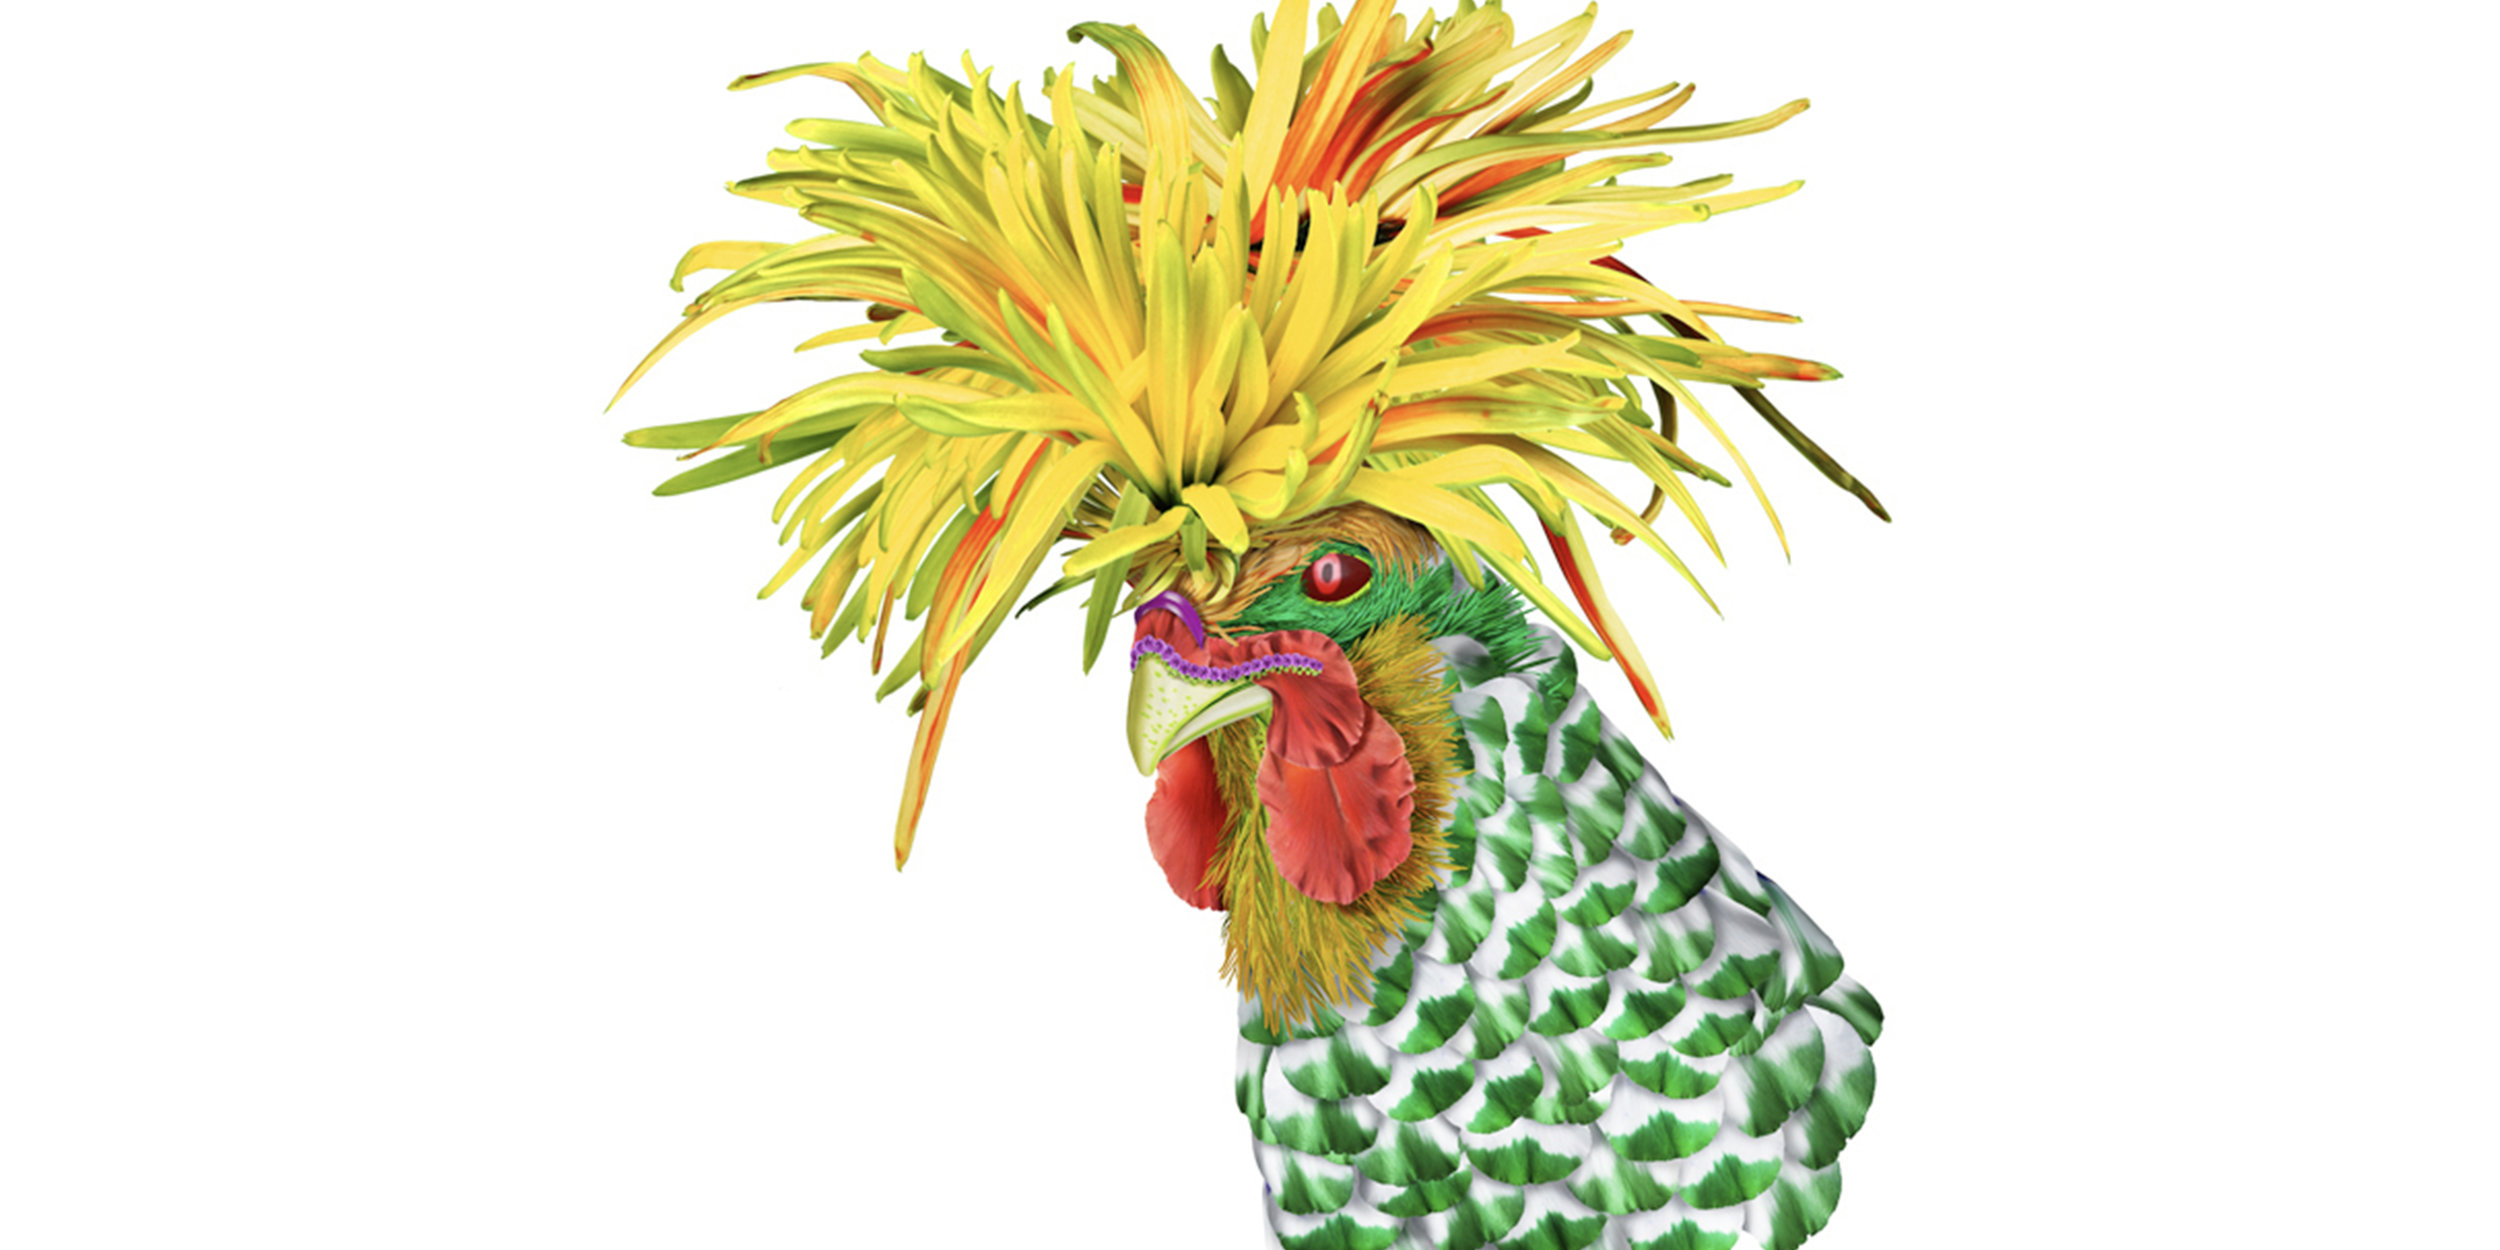 Green_Rooster_Sized.jpg